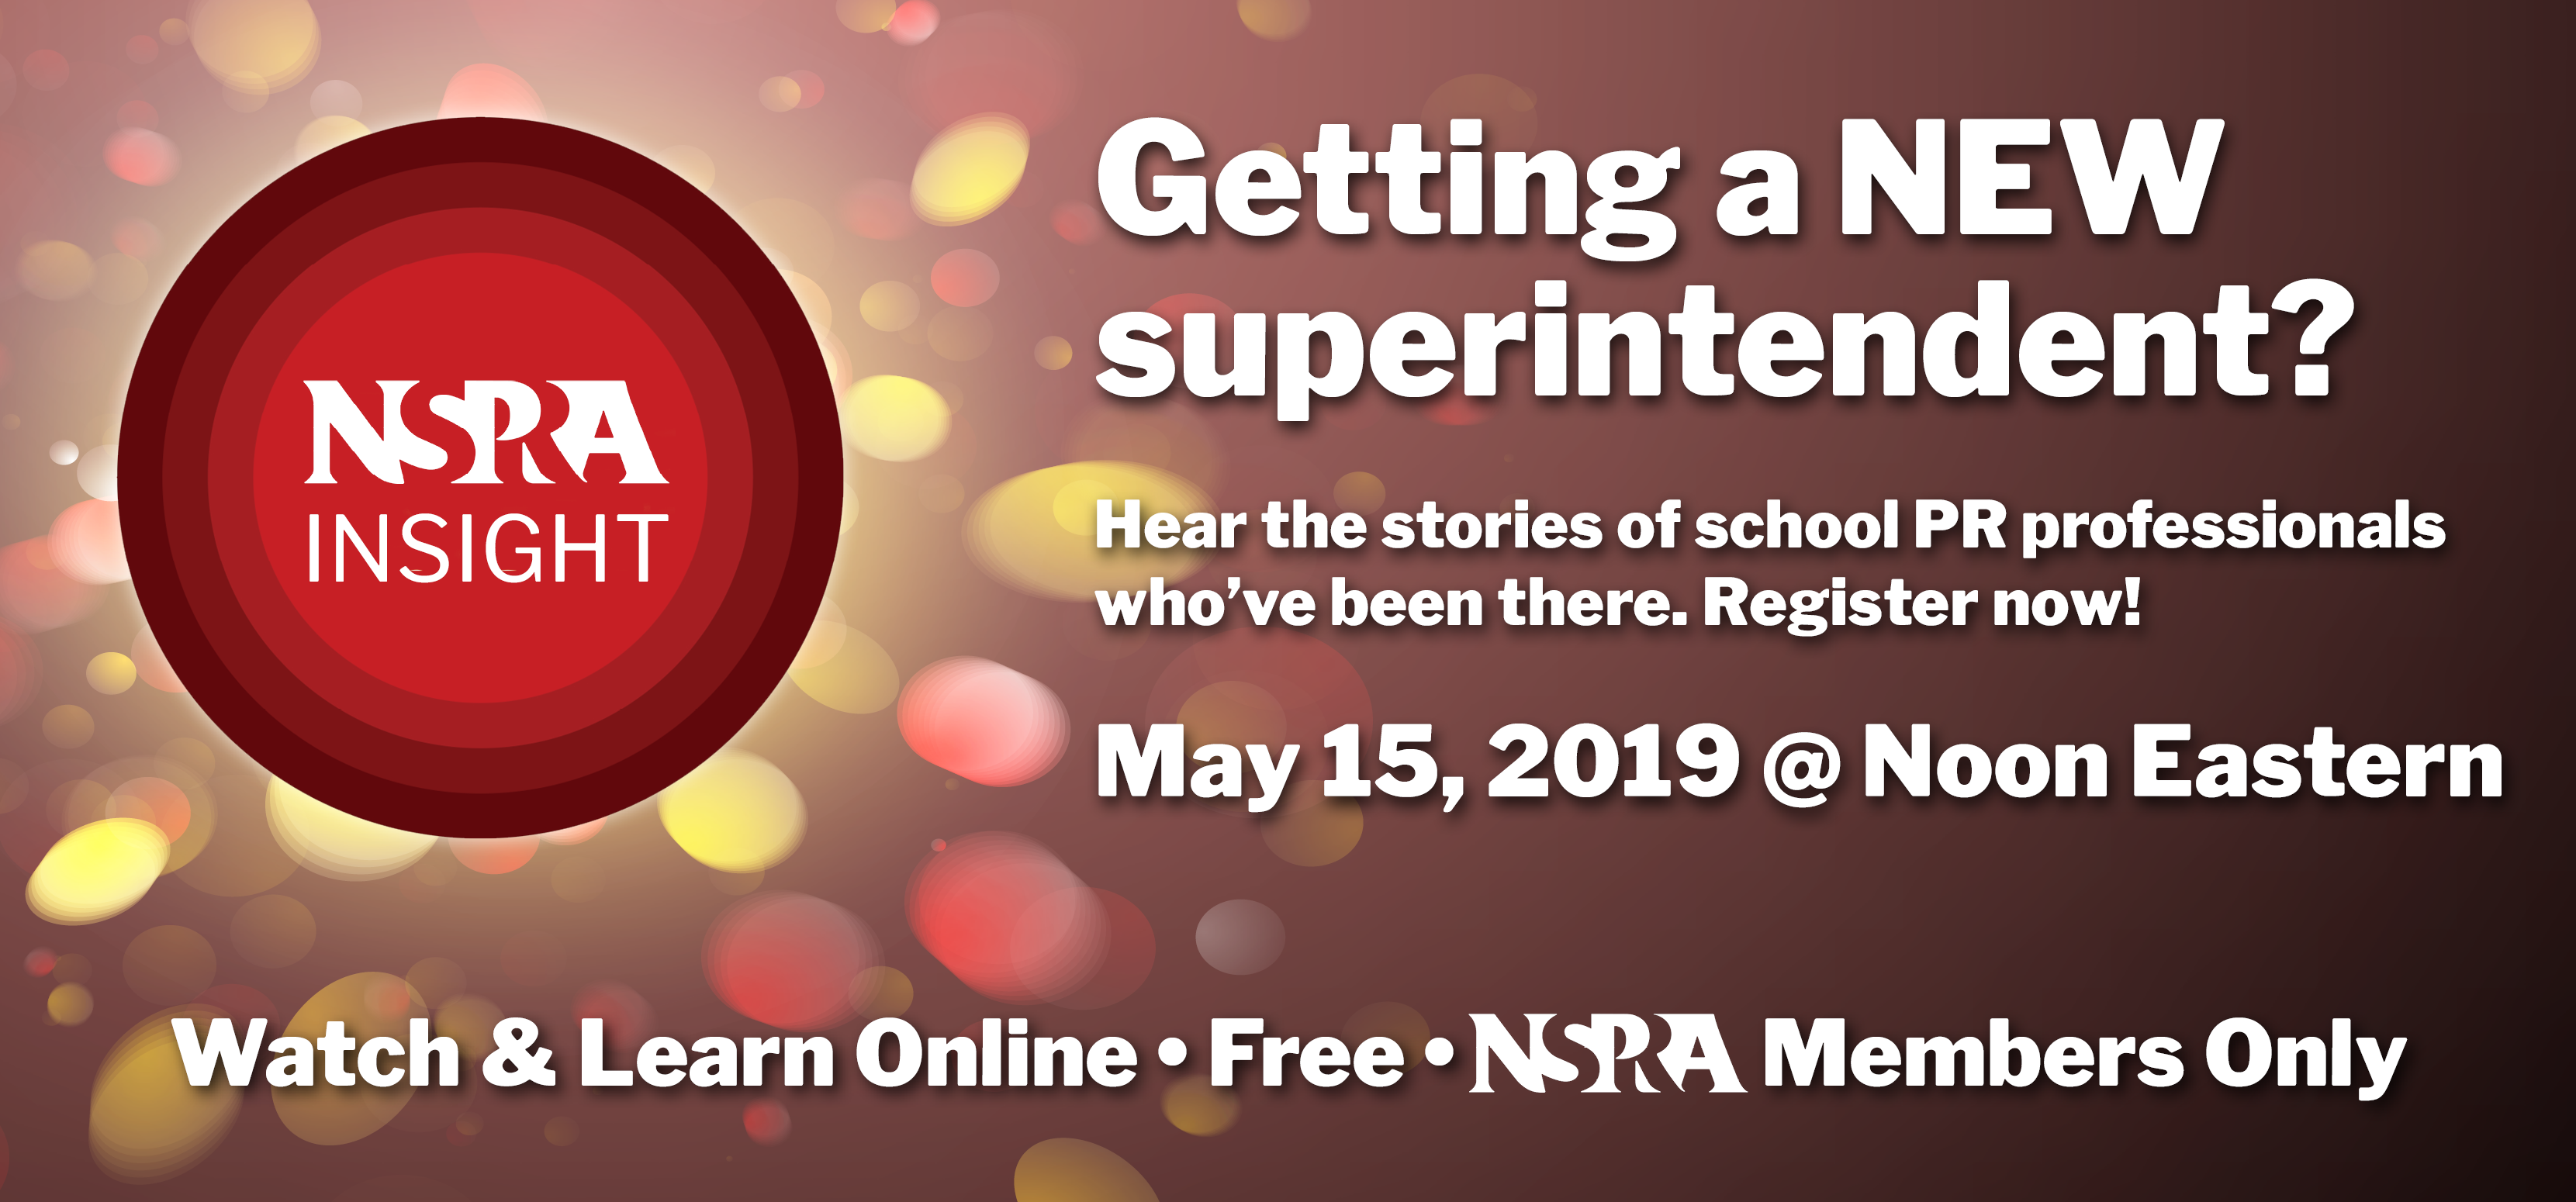 NSPRA Insight graphic with text: Getting a new superintendent? Hear stories from school PR pros who've been there 5/15.